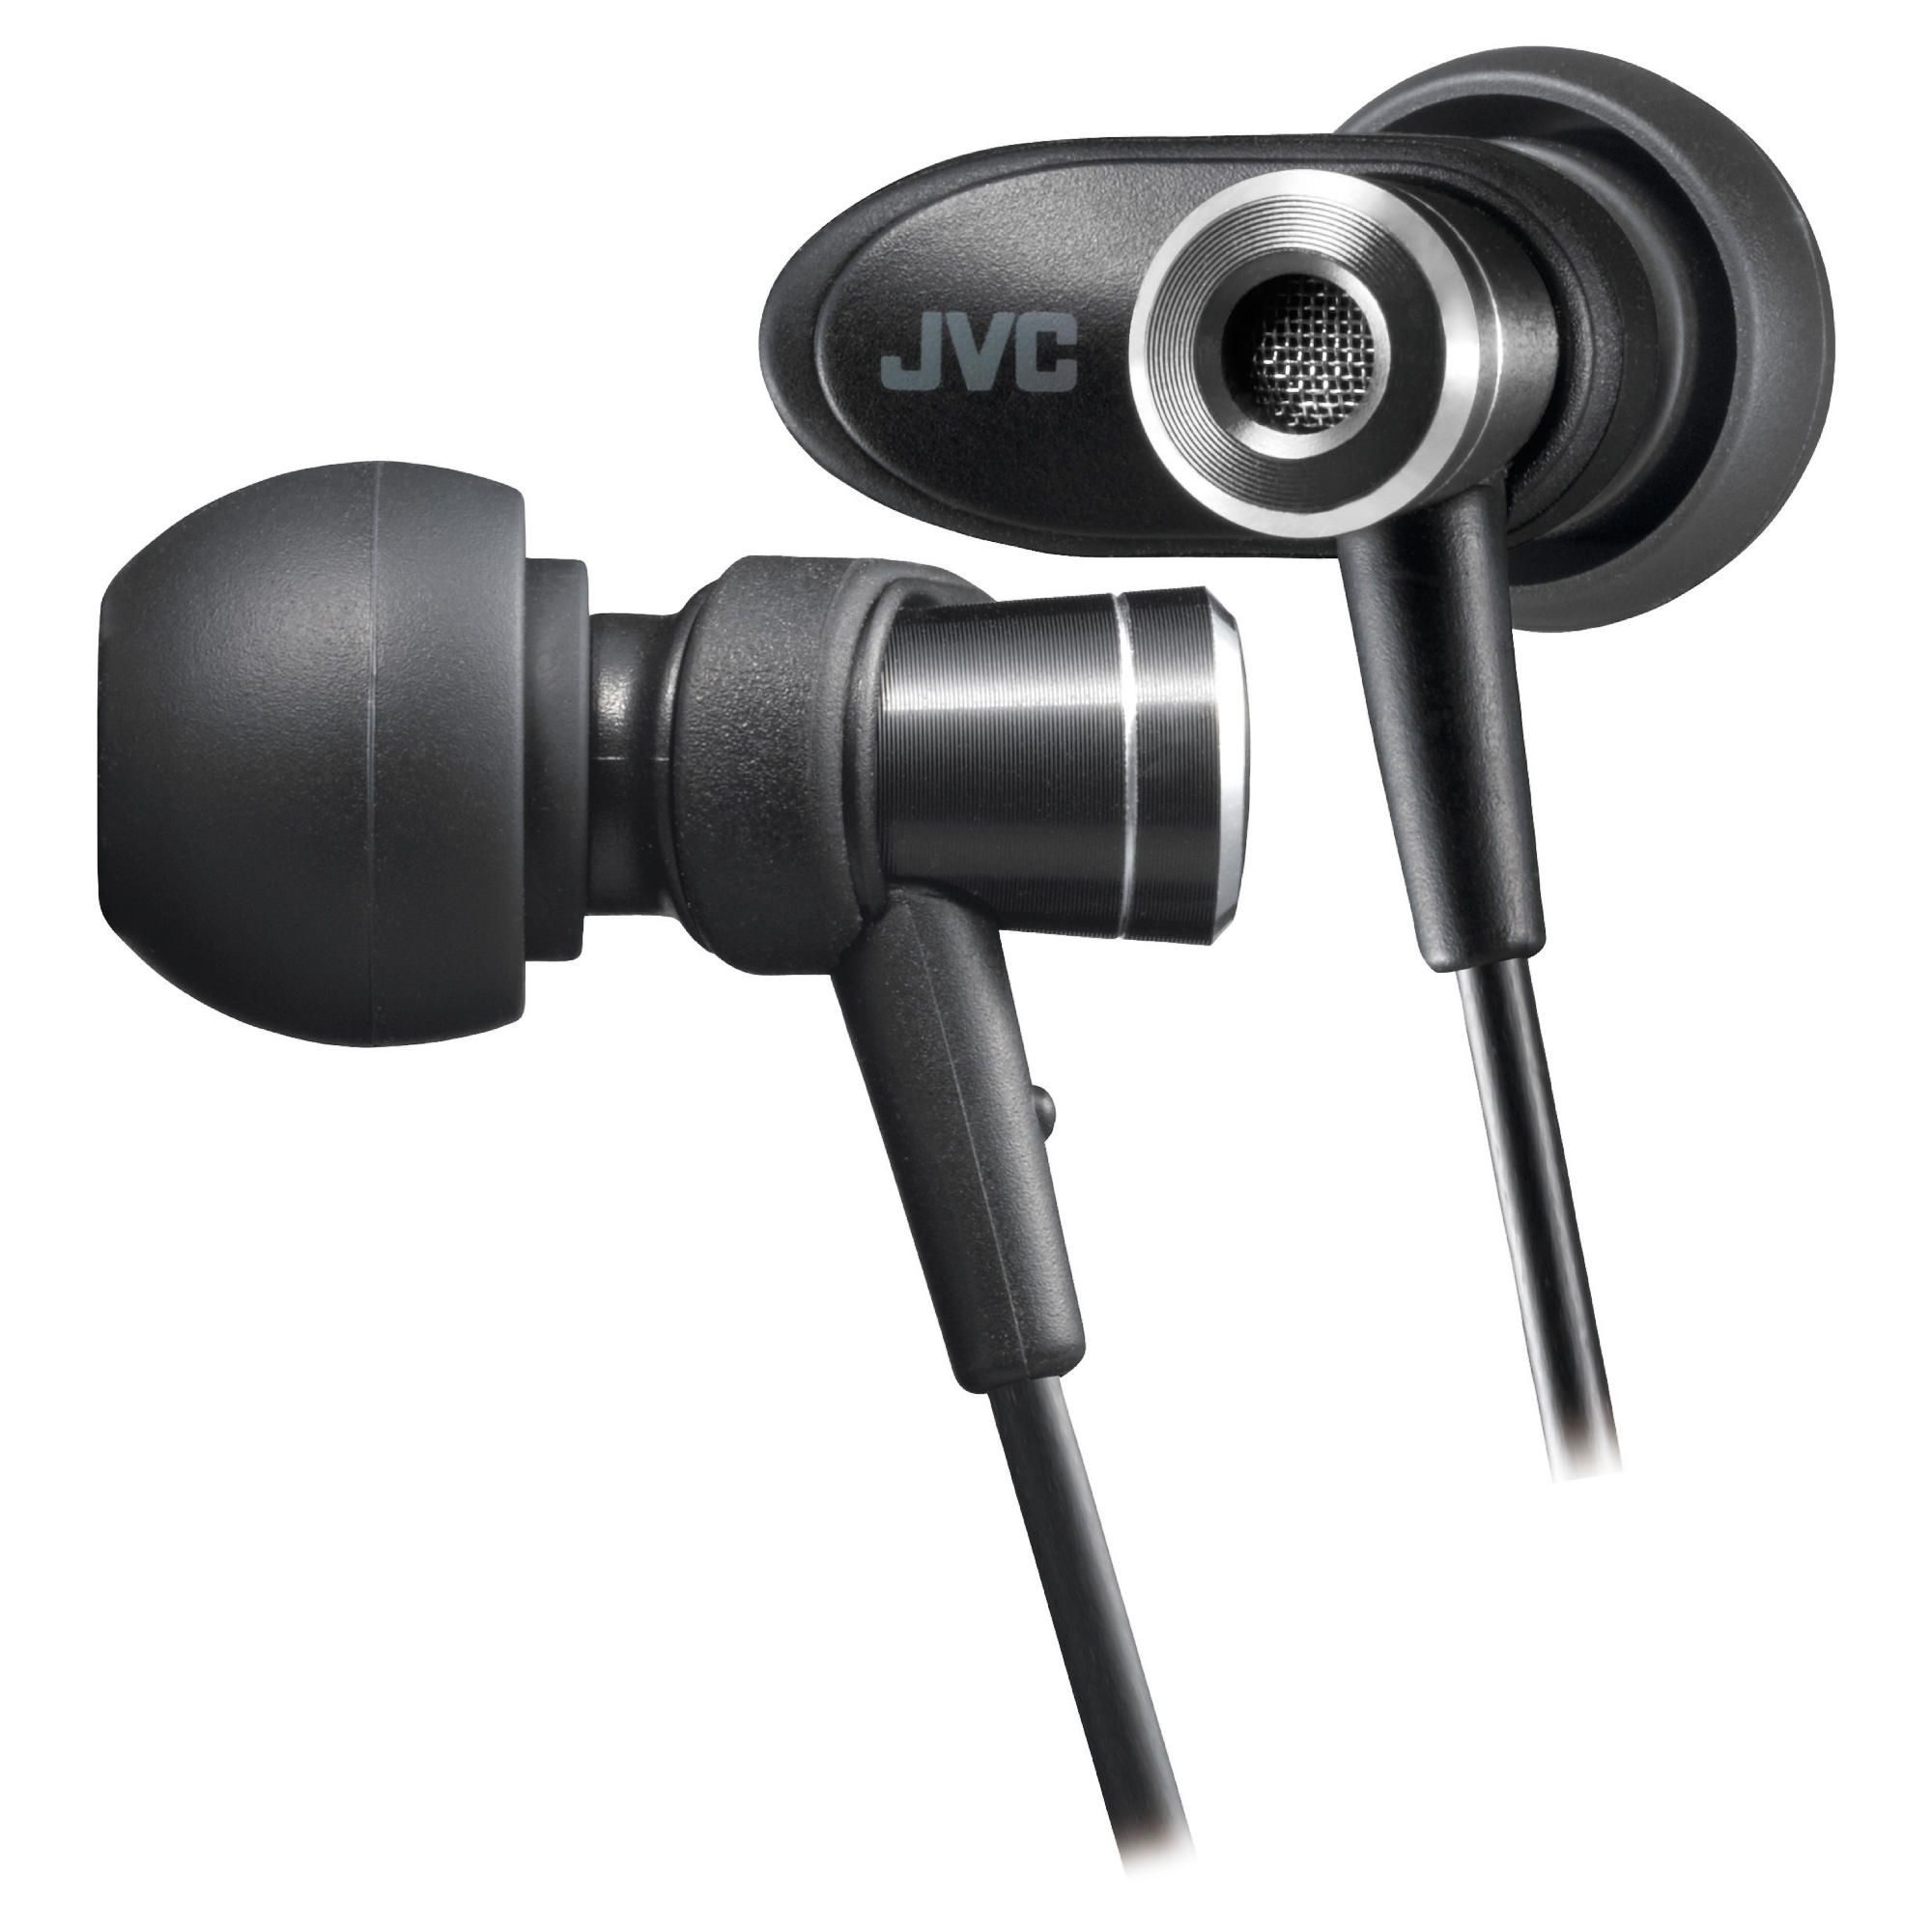 JVC Micro HD In-Ear Canal Headphones Black HAFXC51BE